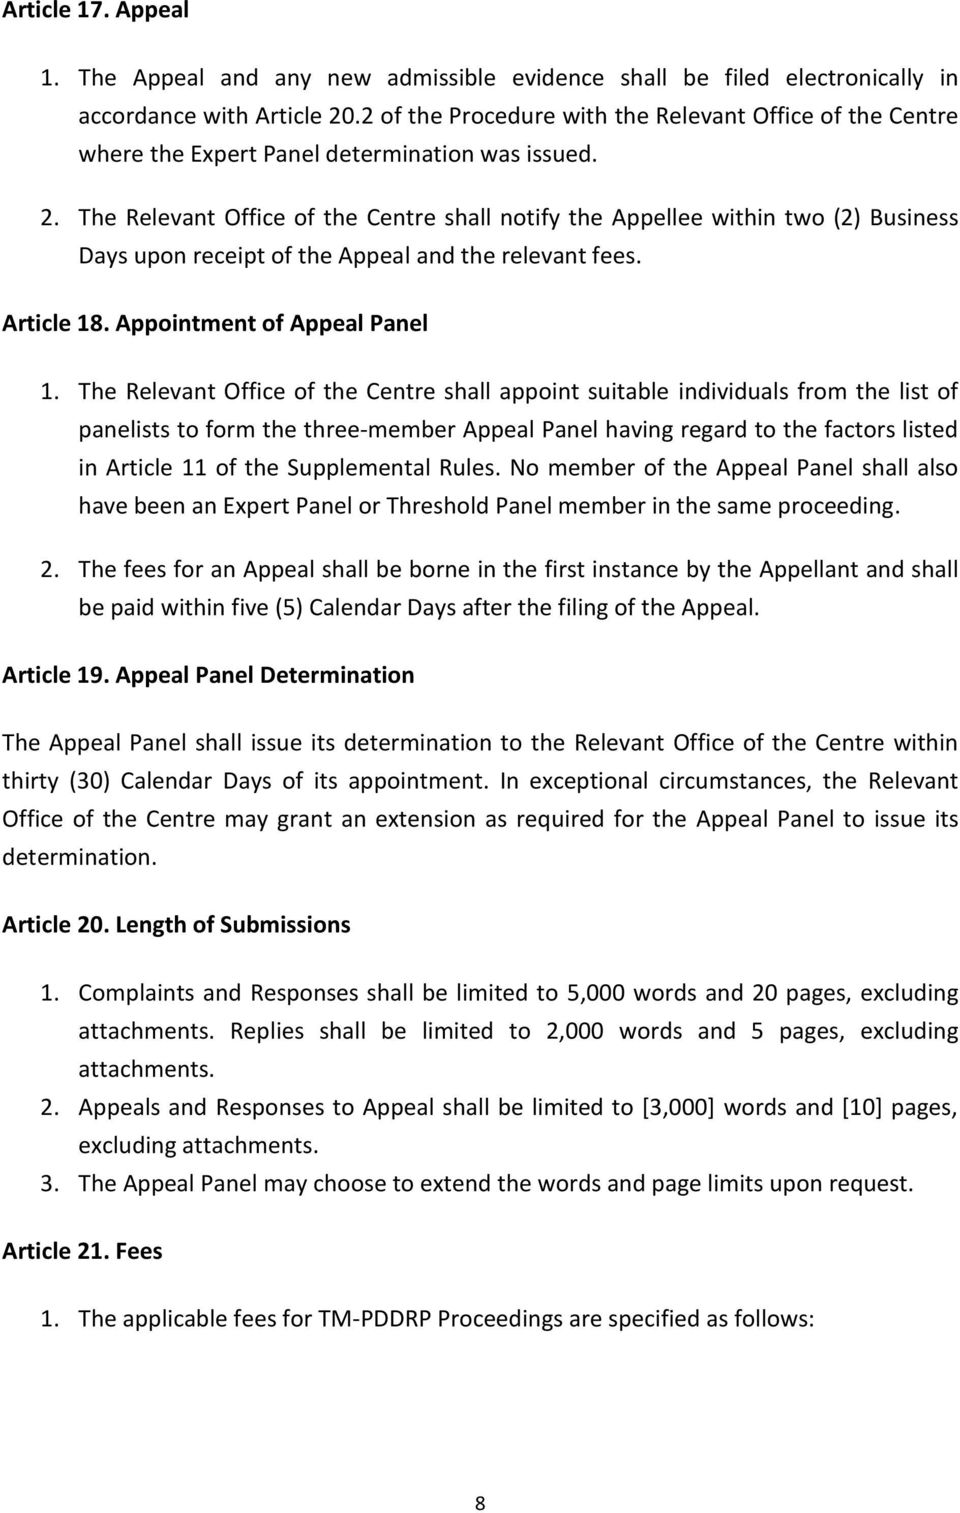 The Relevant Office of the Centre shall notify the Appellee within two (2) Business Days upon receipt of the Appeal and the relevant fees. Article 18. Appointment of Appeal Panel 1.